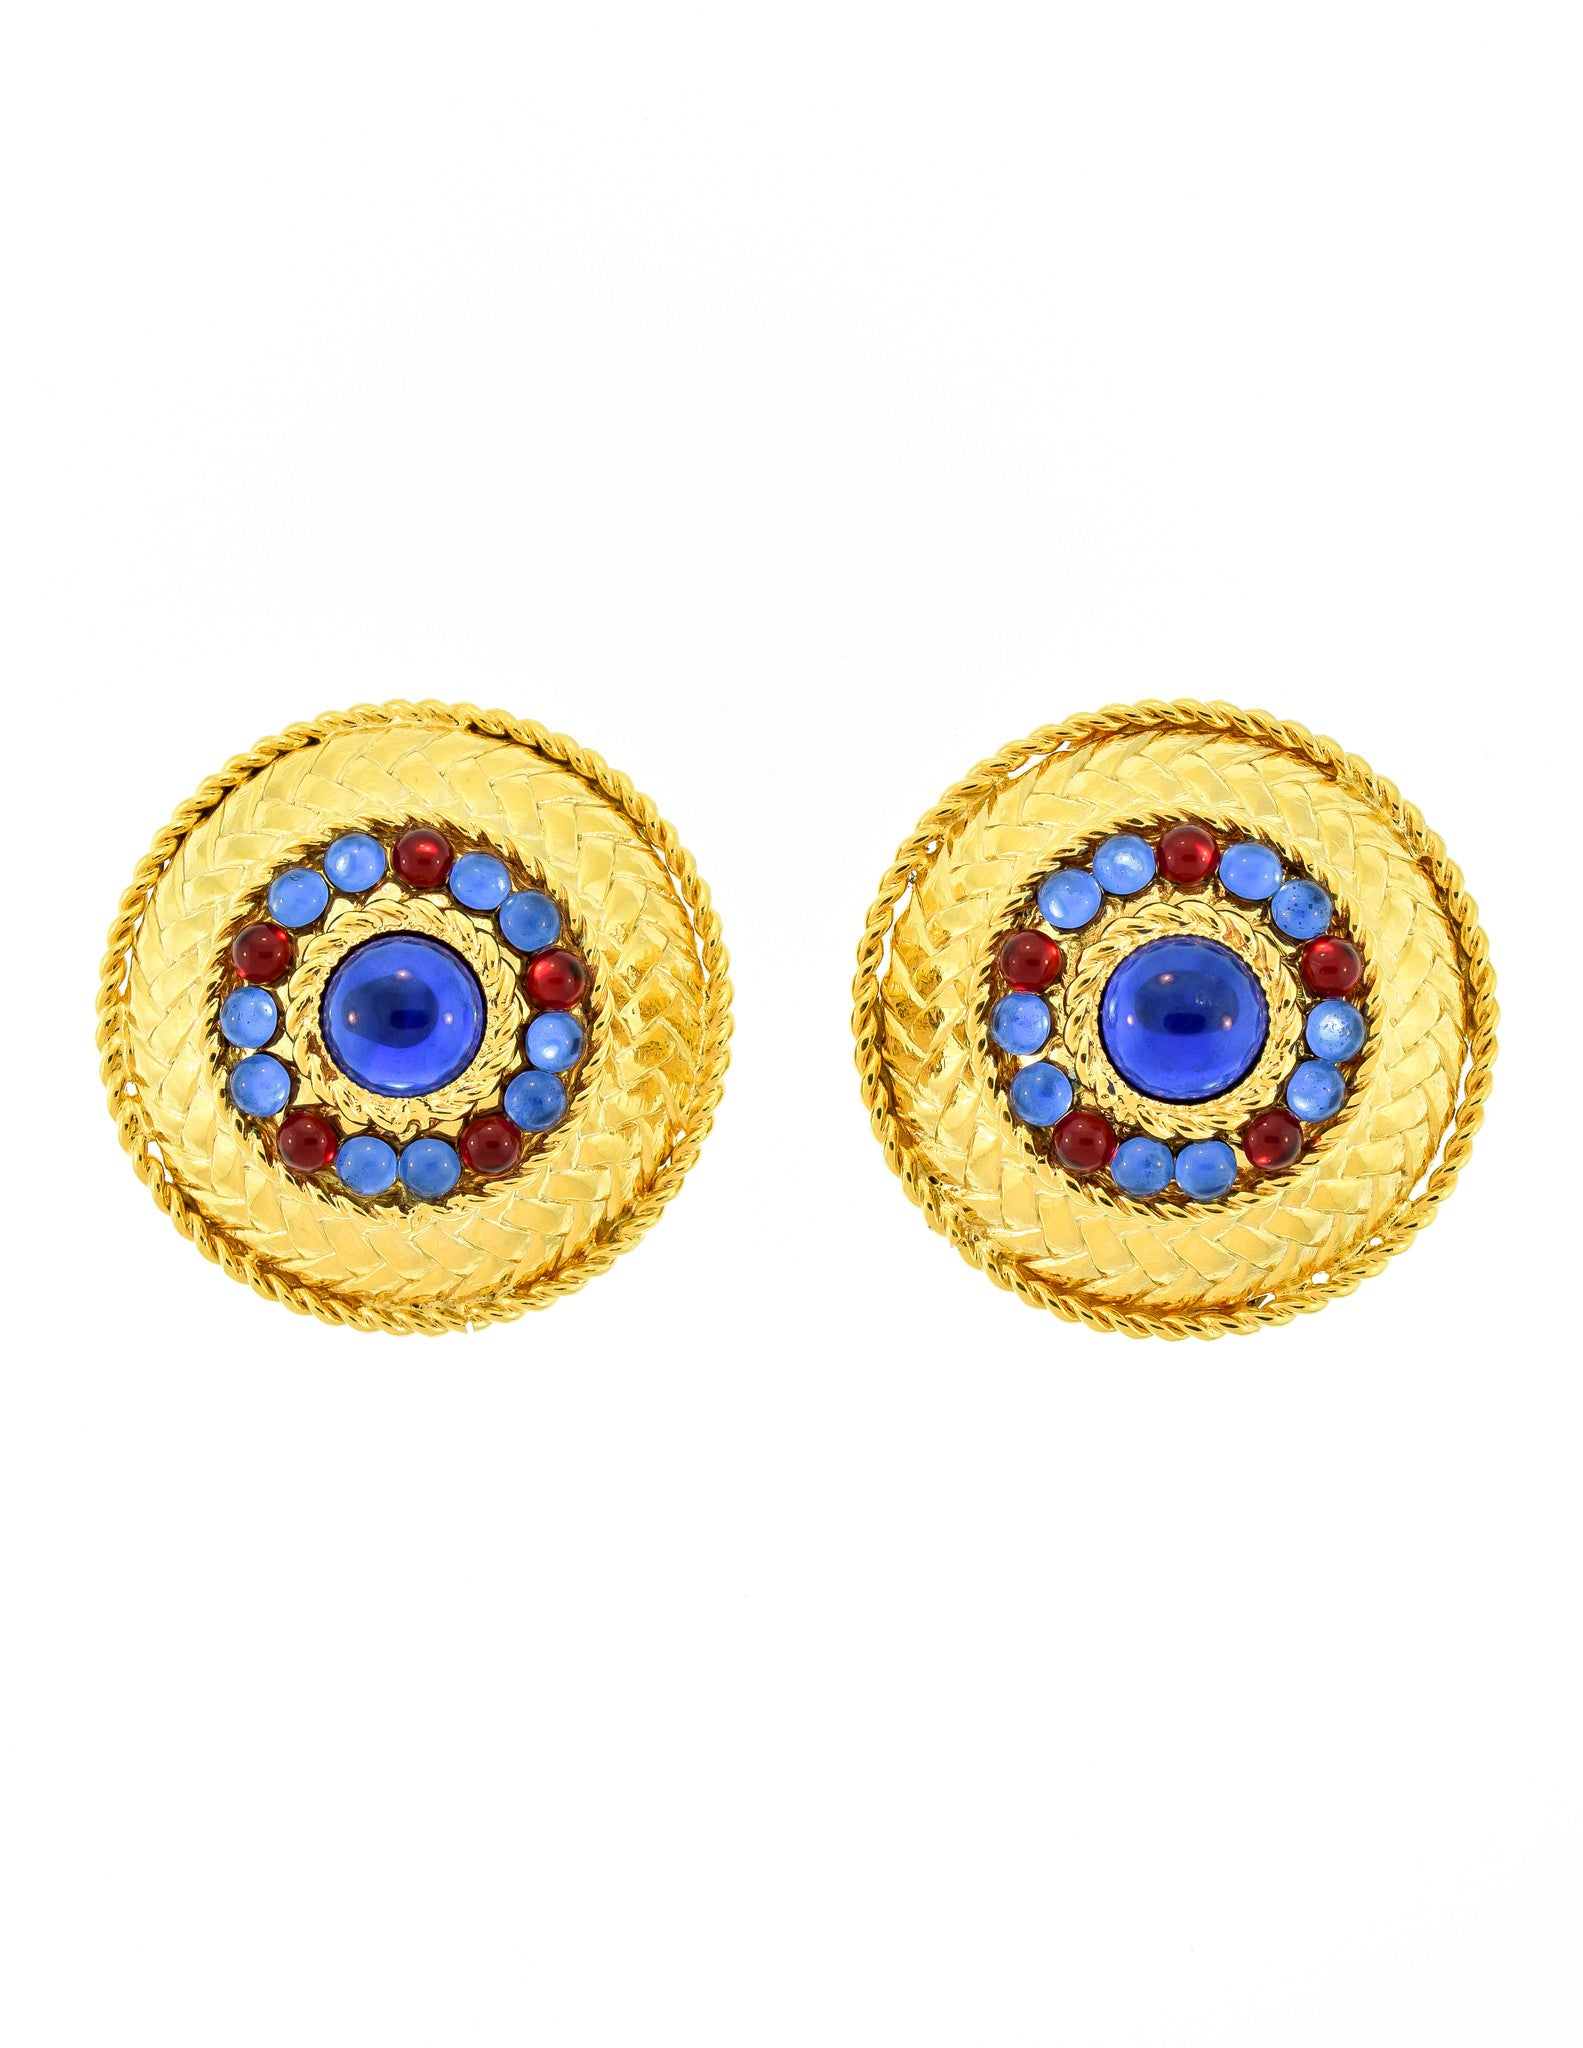 Gianfranco Ferré Vintage Gold Blue & Red Rhinestone Earrings  Amarcord  Vintage Fashion  2